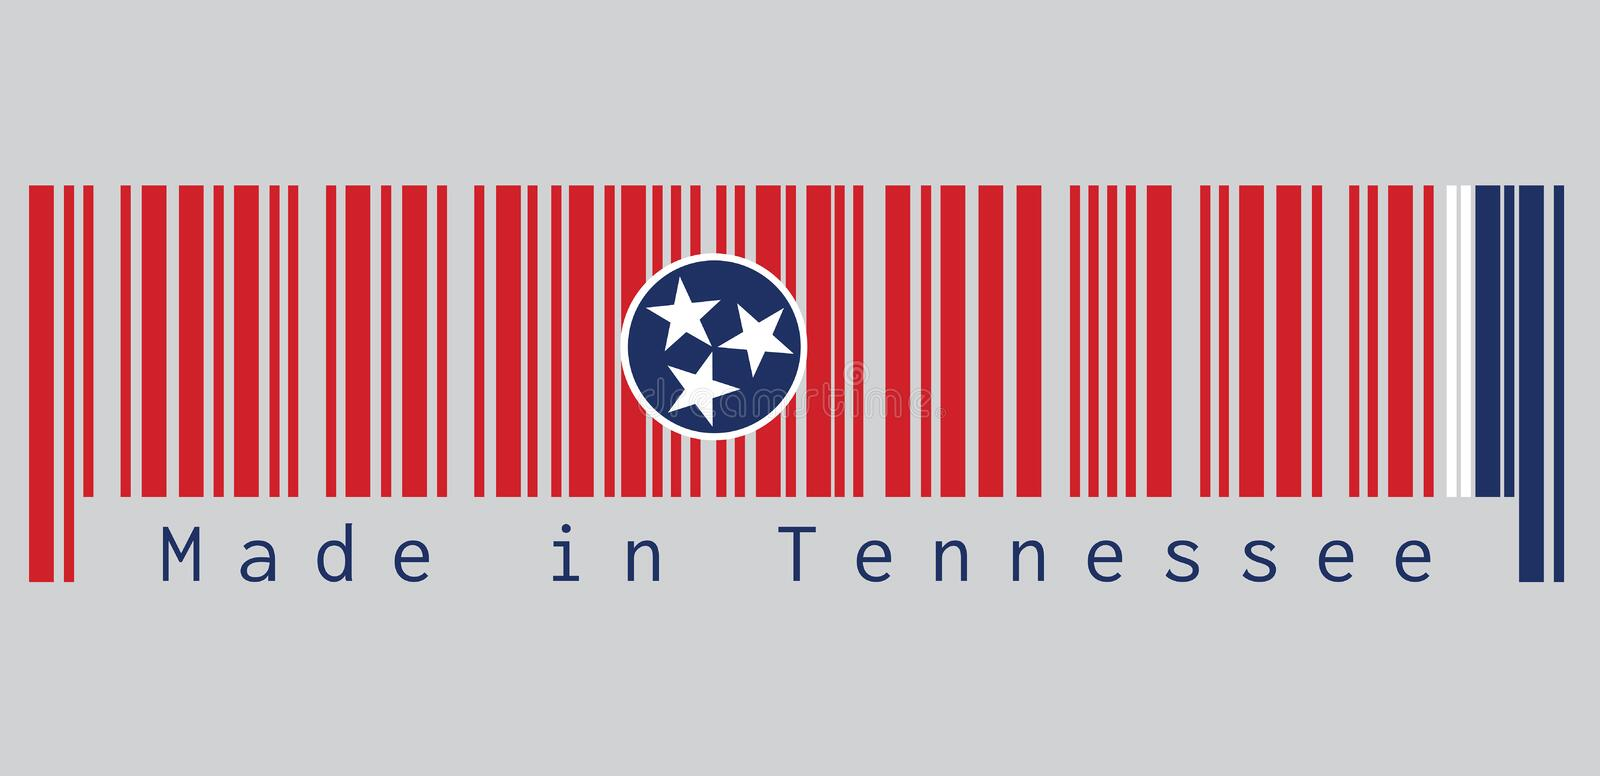 Barcode set the color of Tennessee flag, A blue circle with three white five-pointed stars on a rectangular field of red. vector illustration